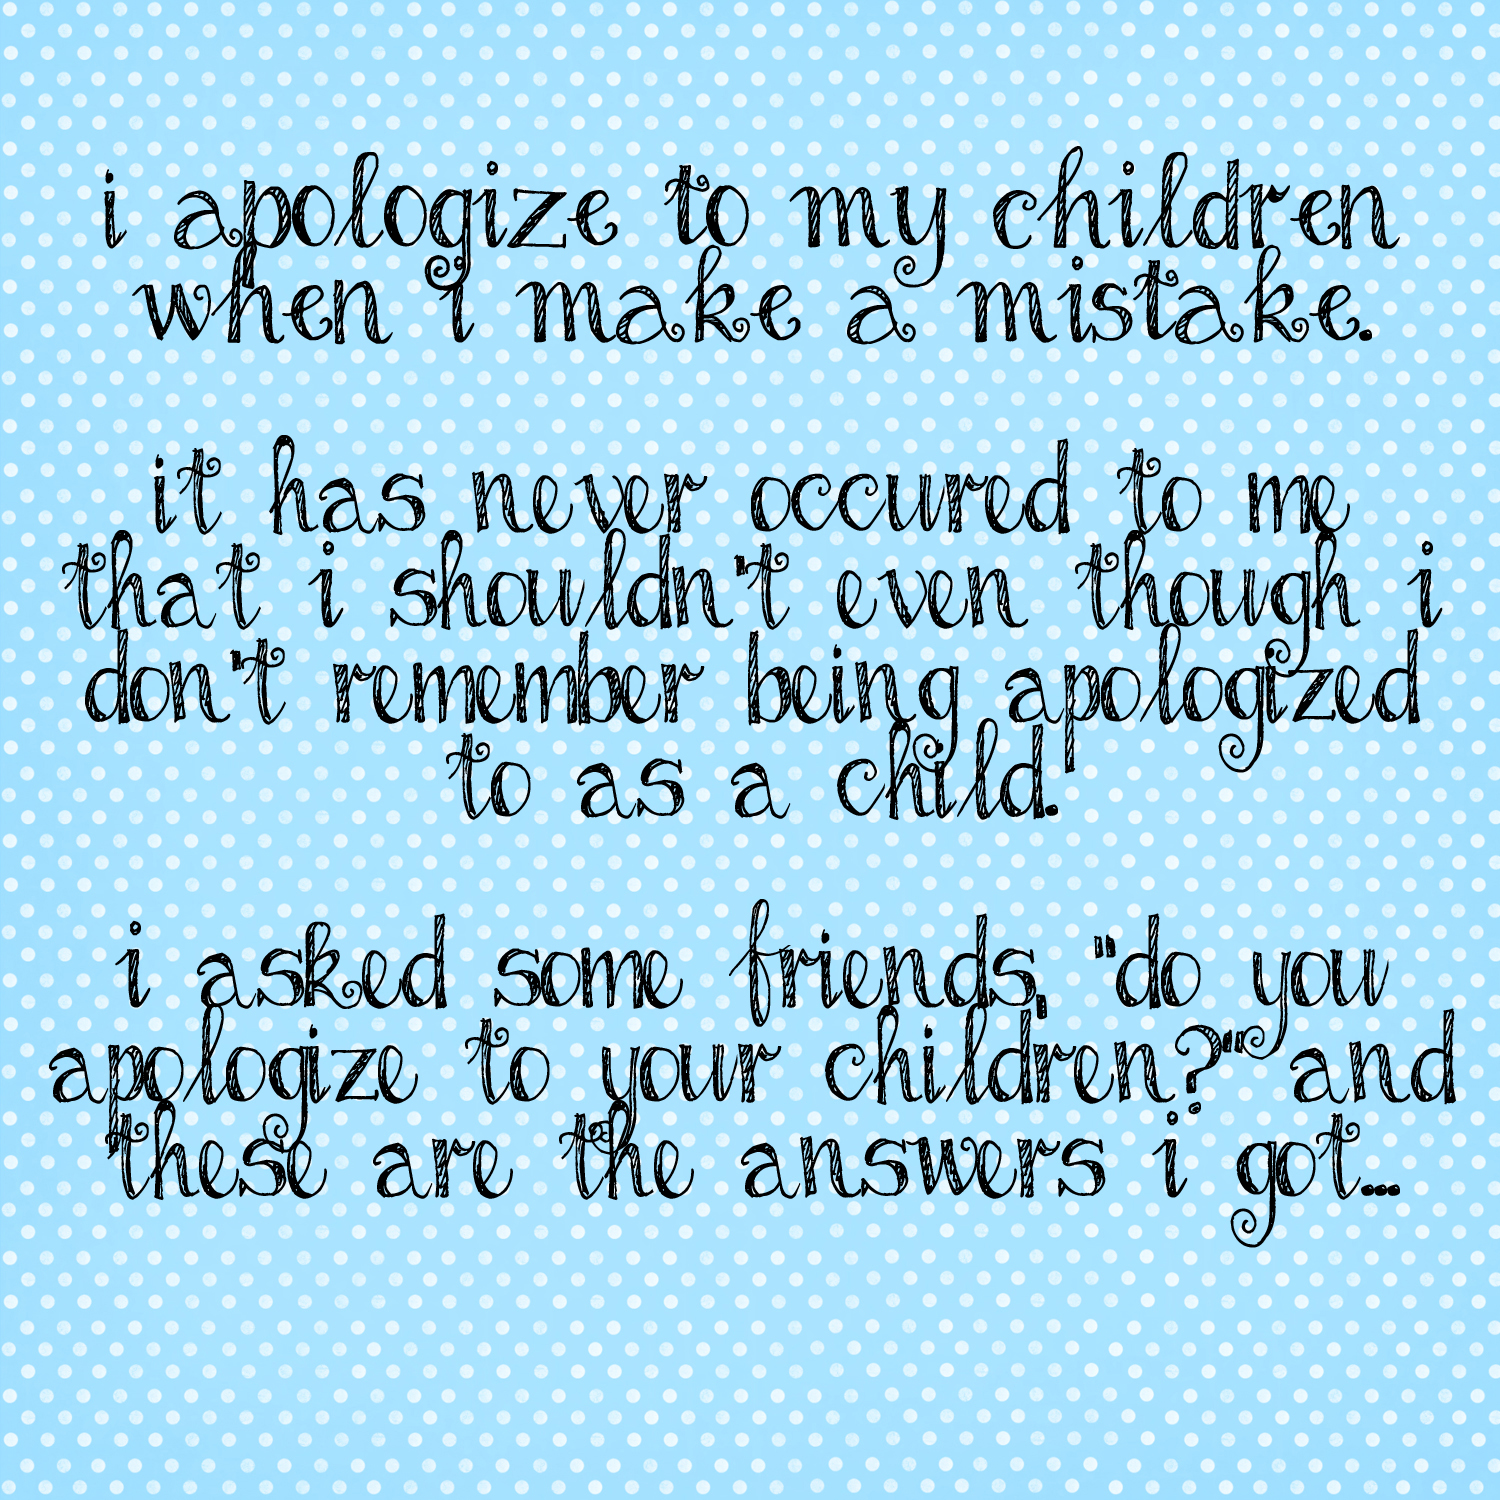 I Apologize To My Children When I Make a Mistake ~ Apology Quote